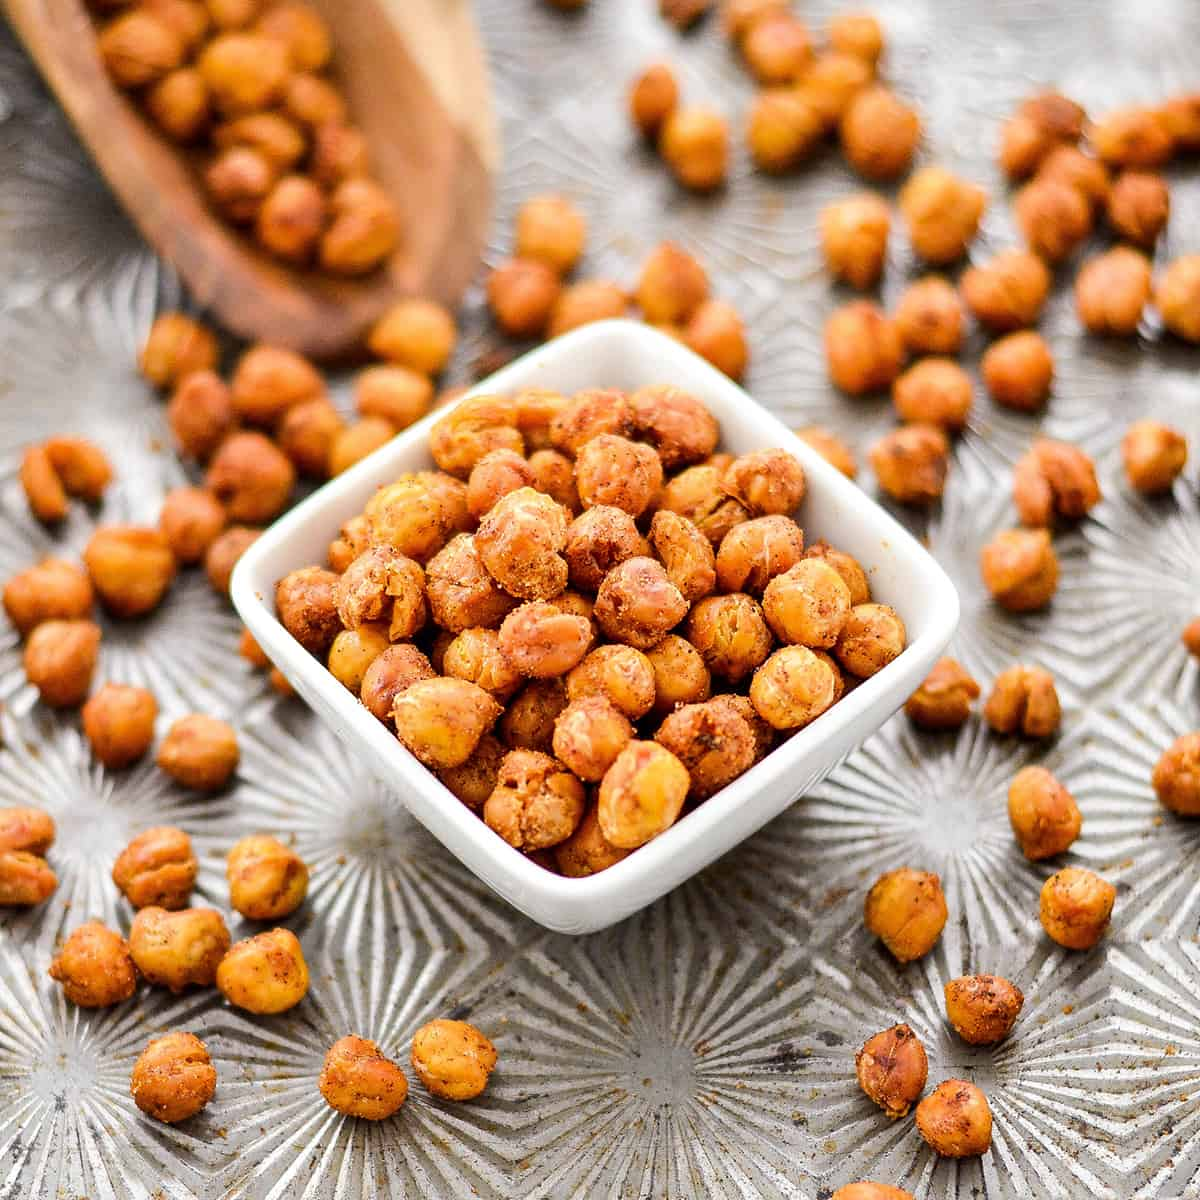 front view of a square dish full of crunchy roasted chickpeas